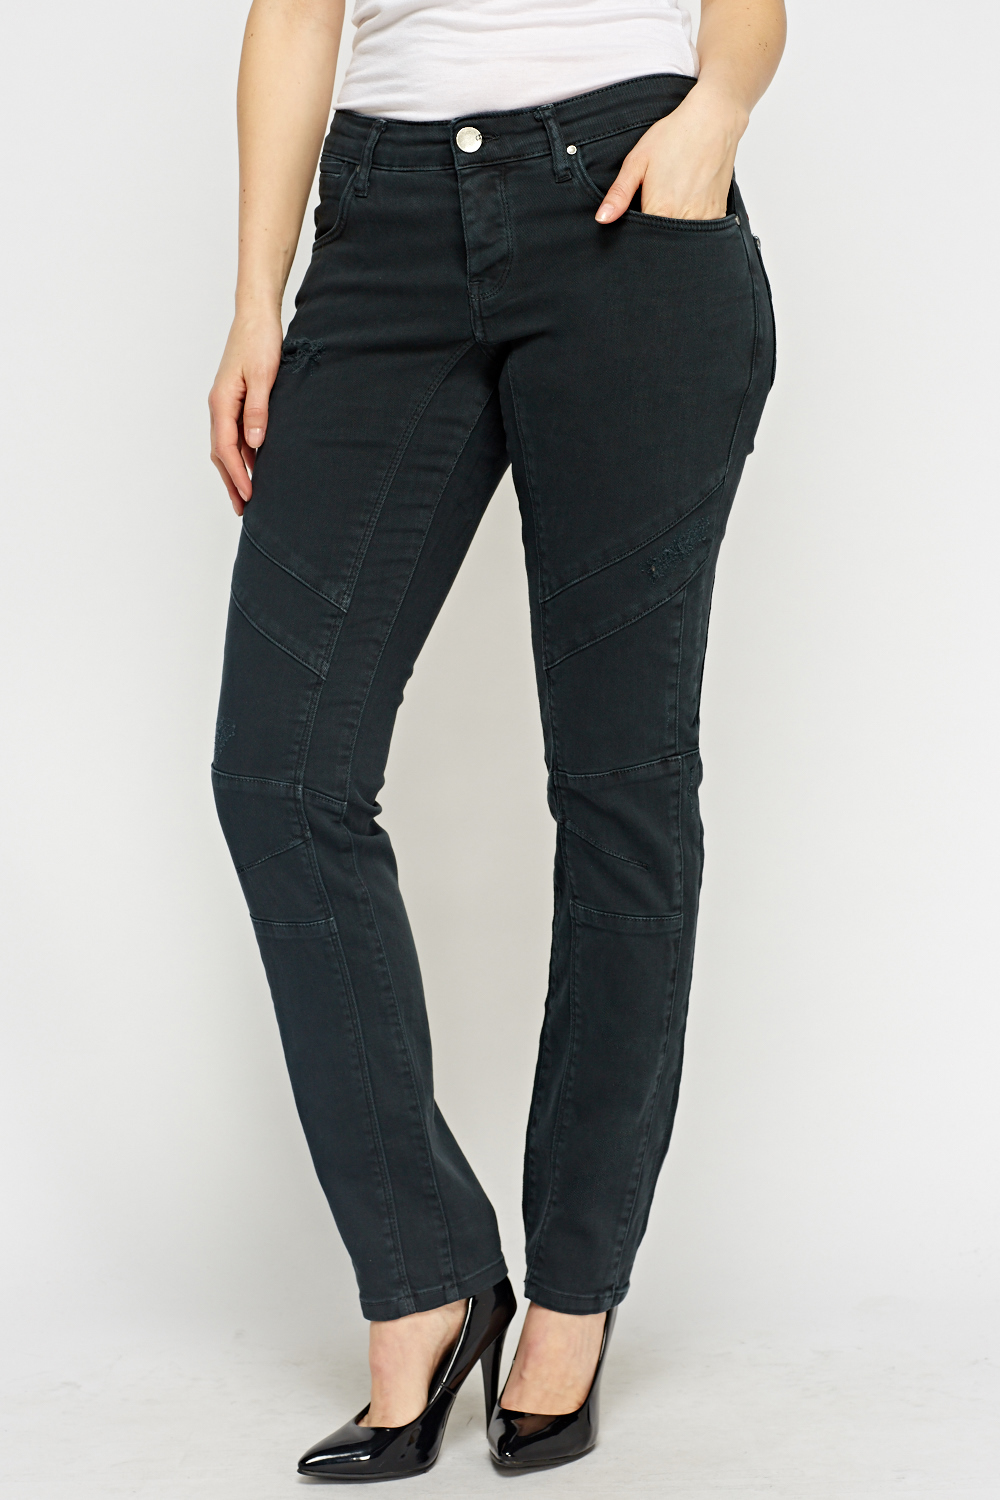 DENIM - Denim trousers Hybris eKxc44cNY6